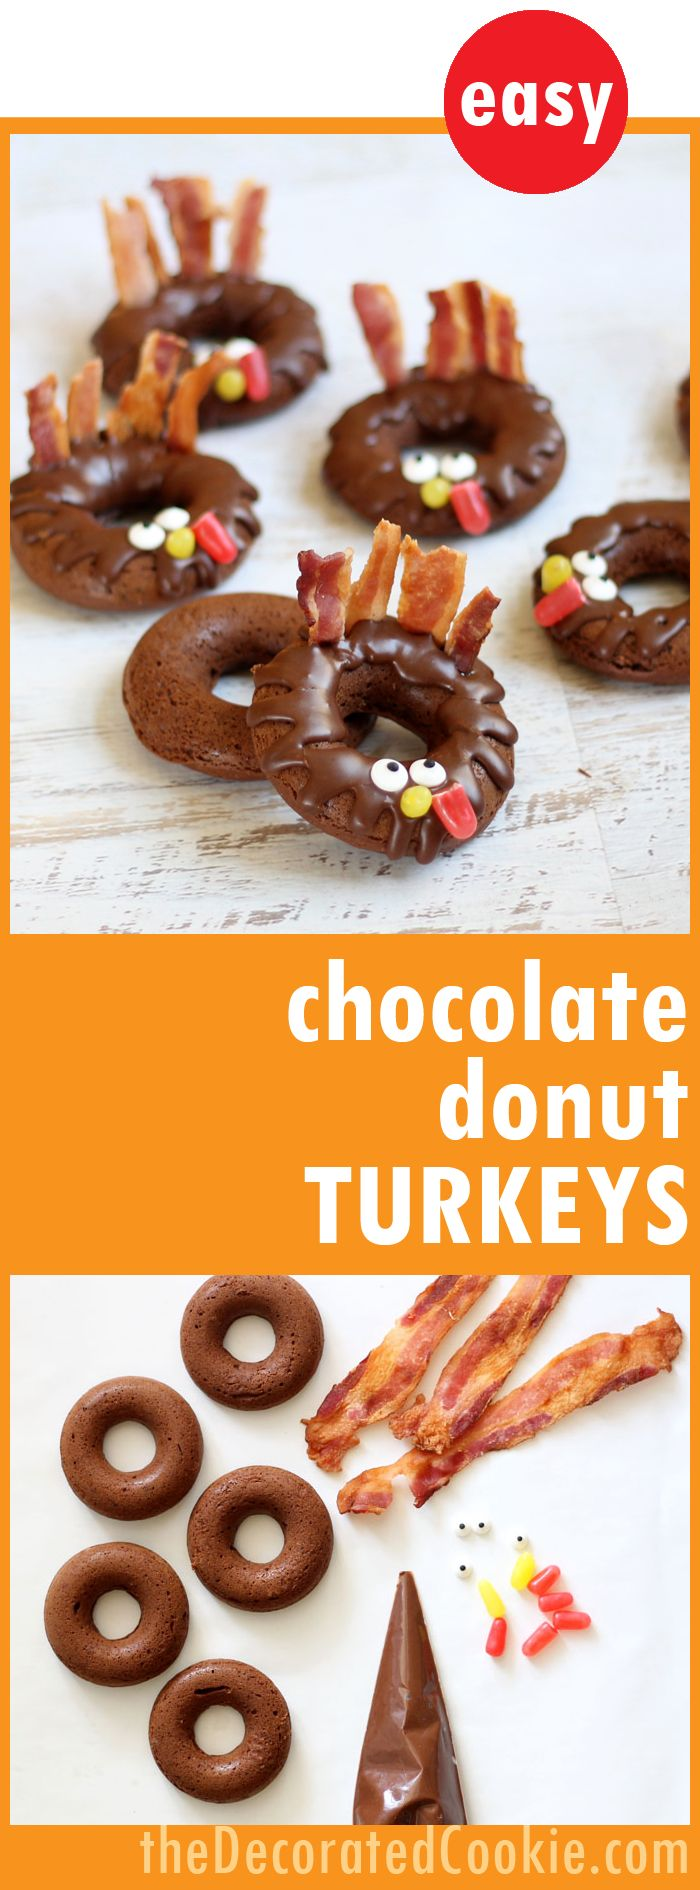 Fun Thanksgiving breakfast idea: Easy baked chocolate donut TURKEYS!